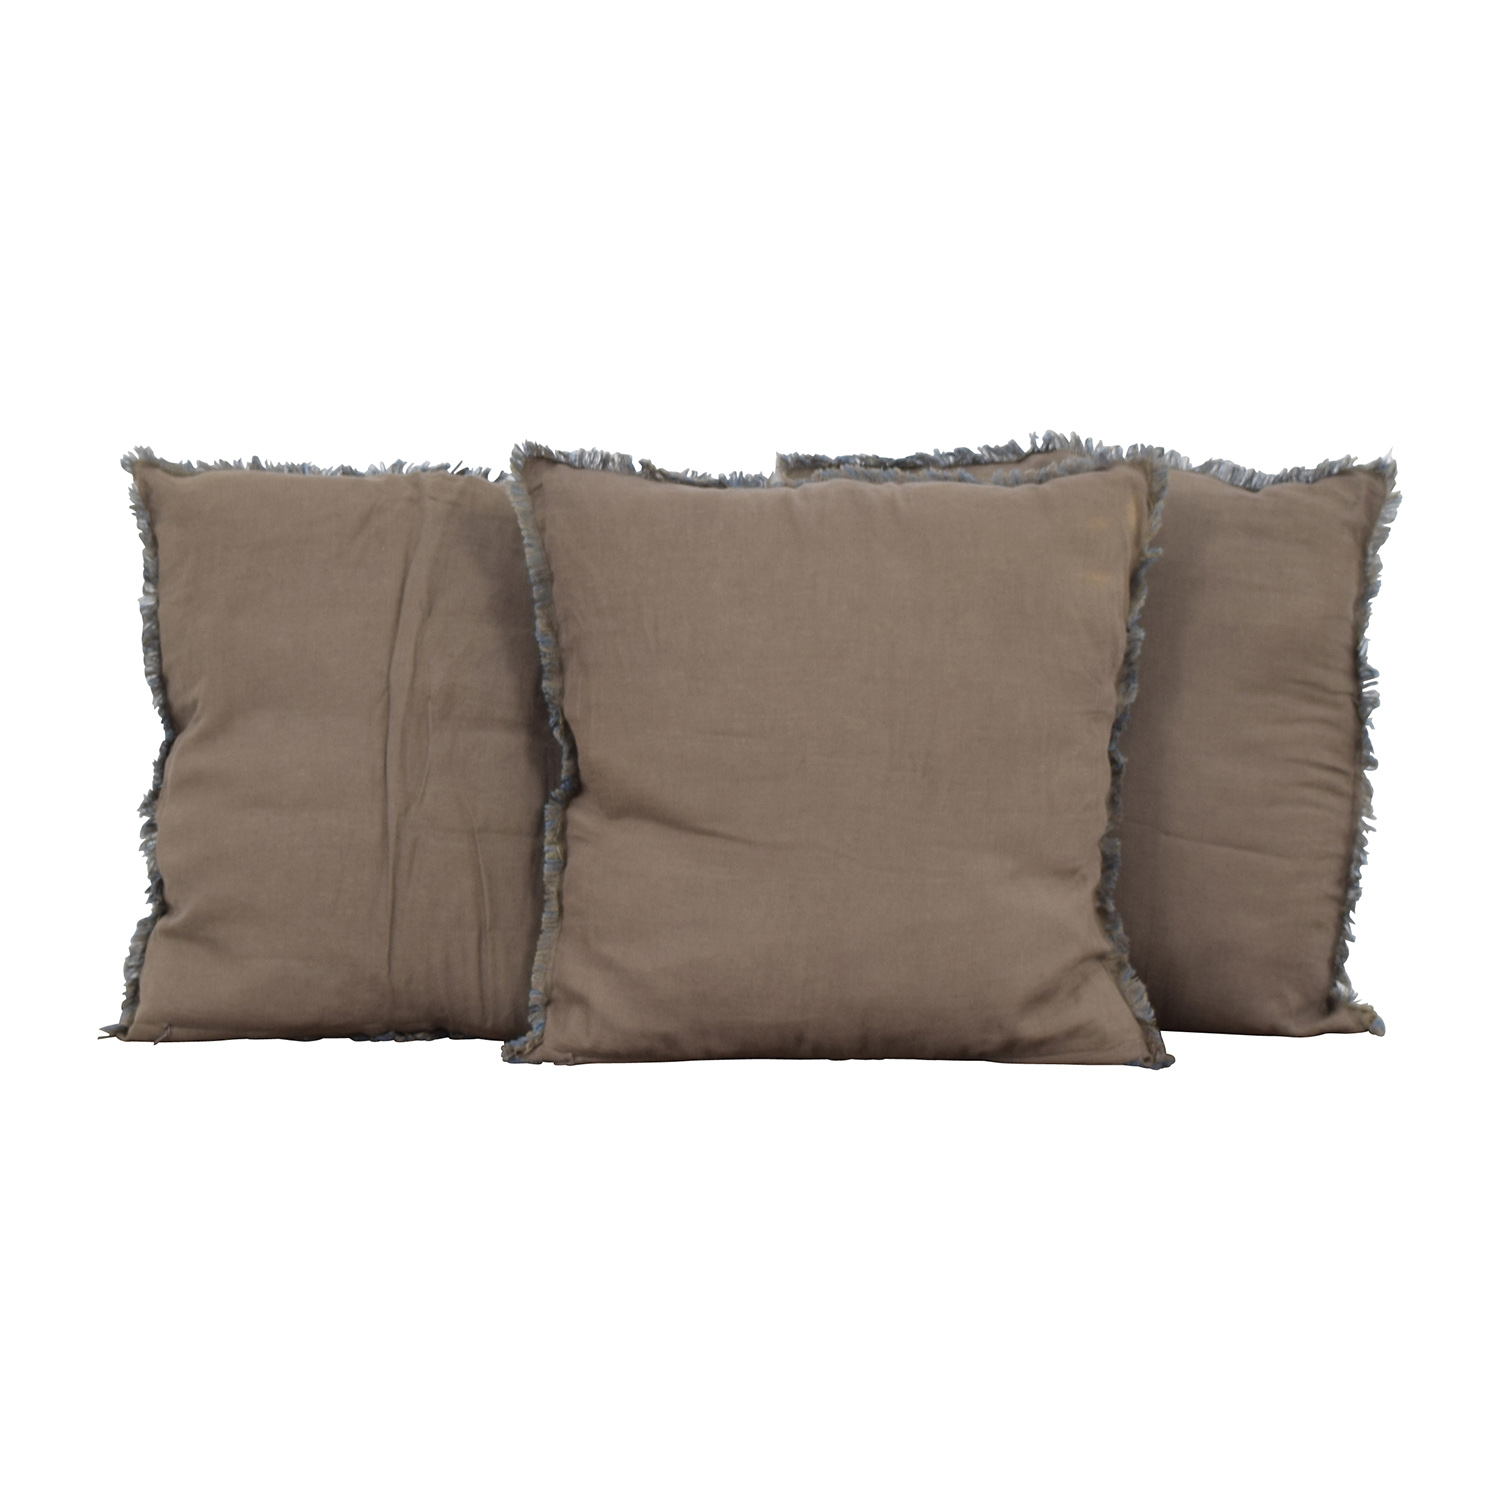 Reversible Blue and Brown Toss Pillows / Decor